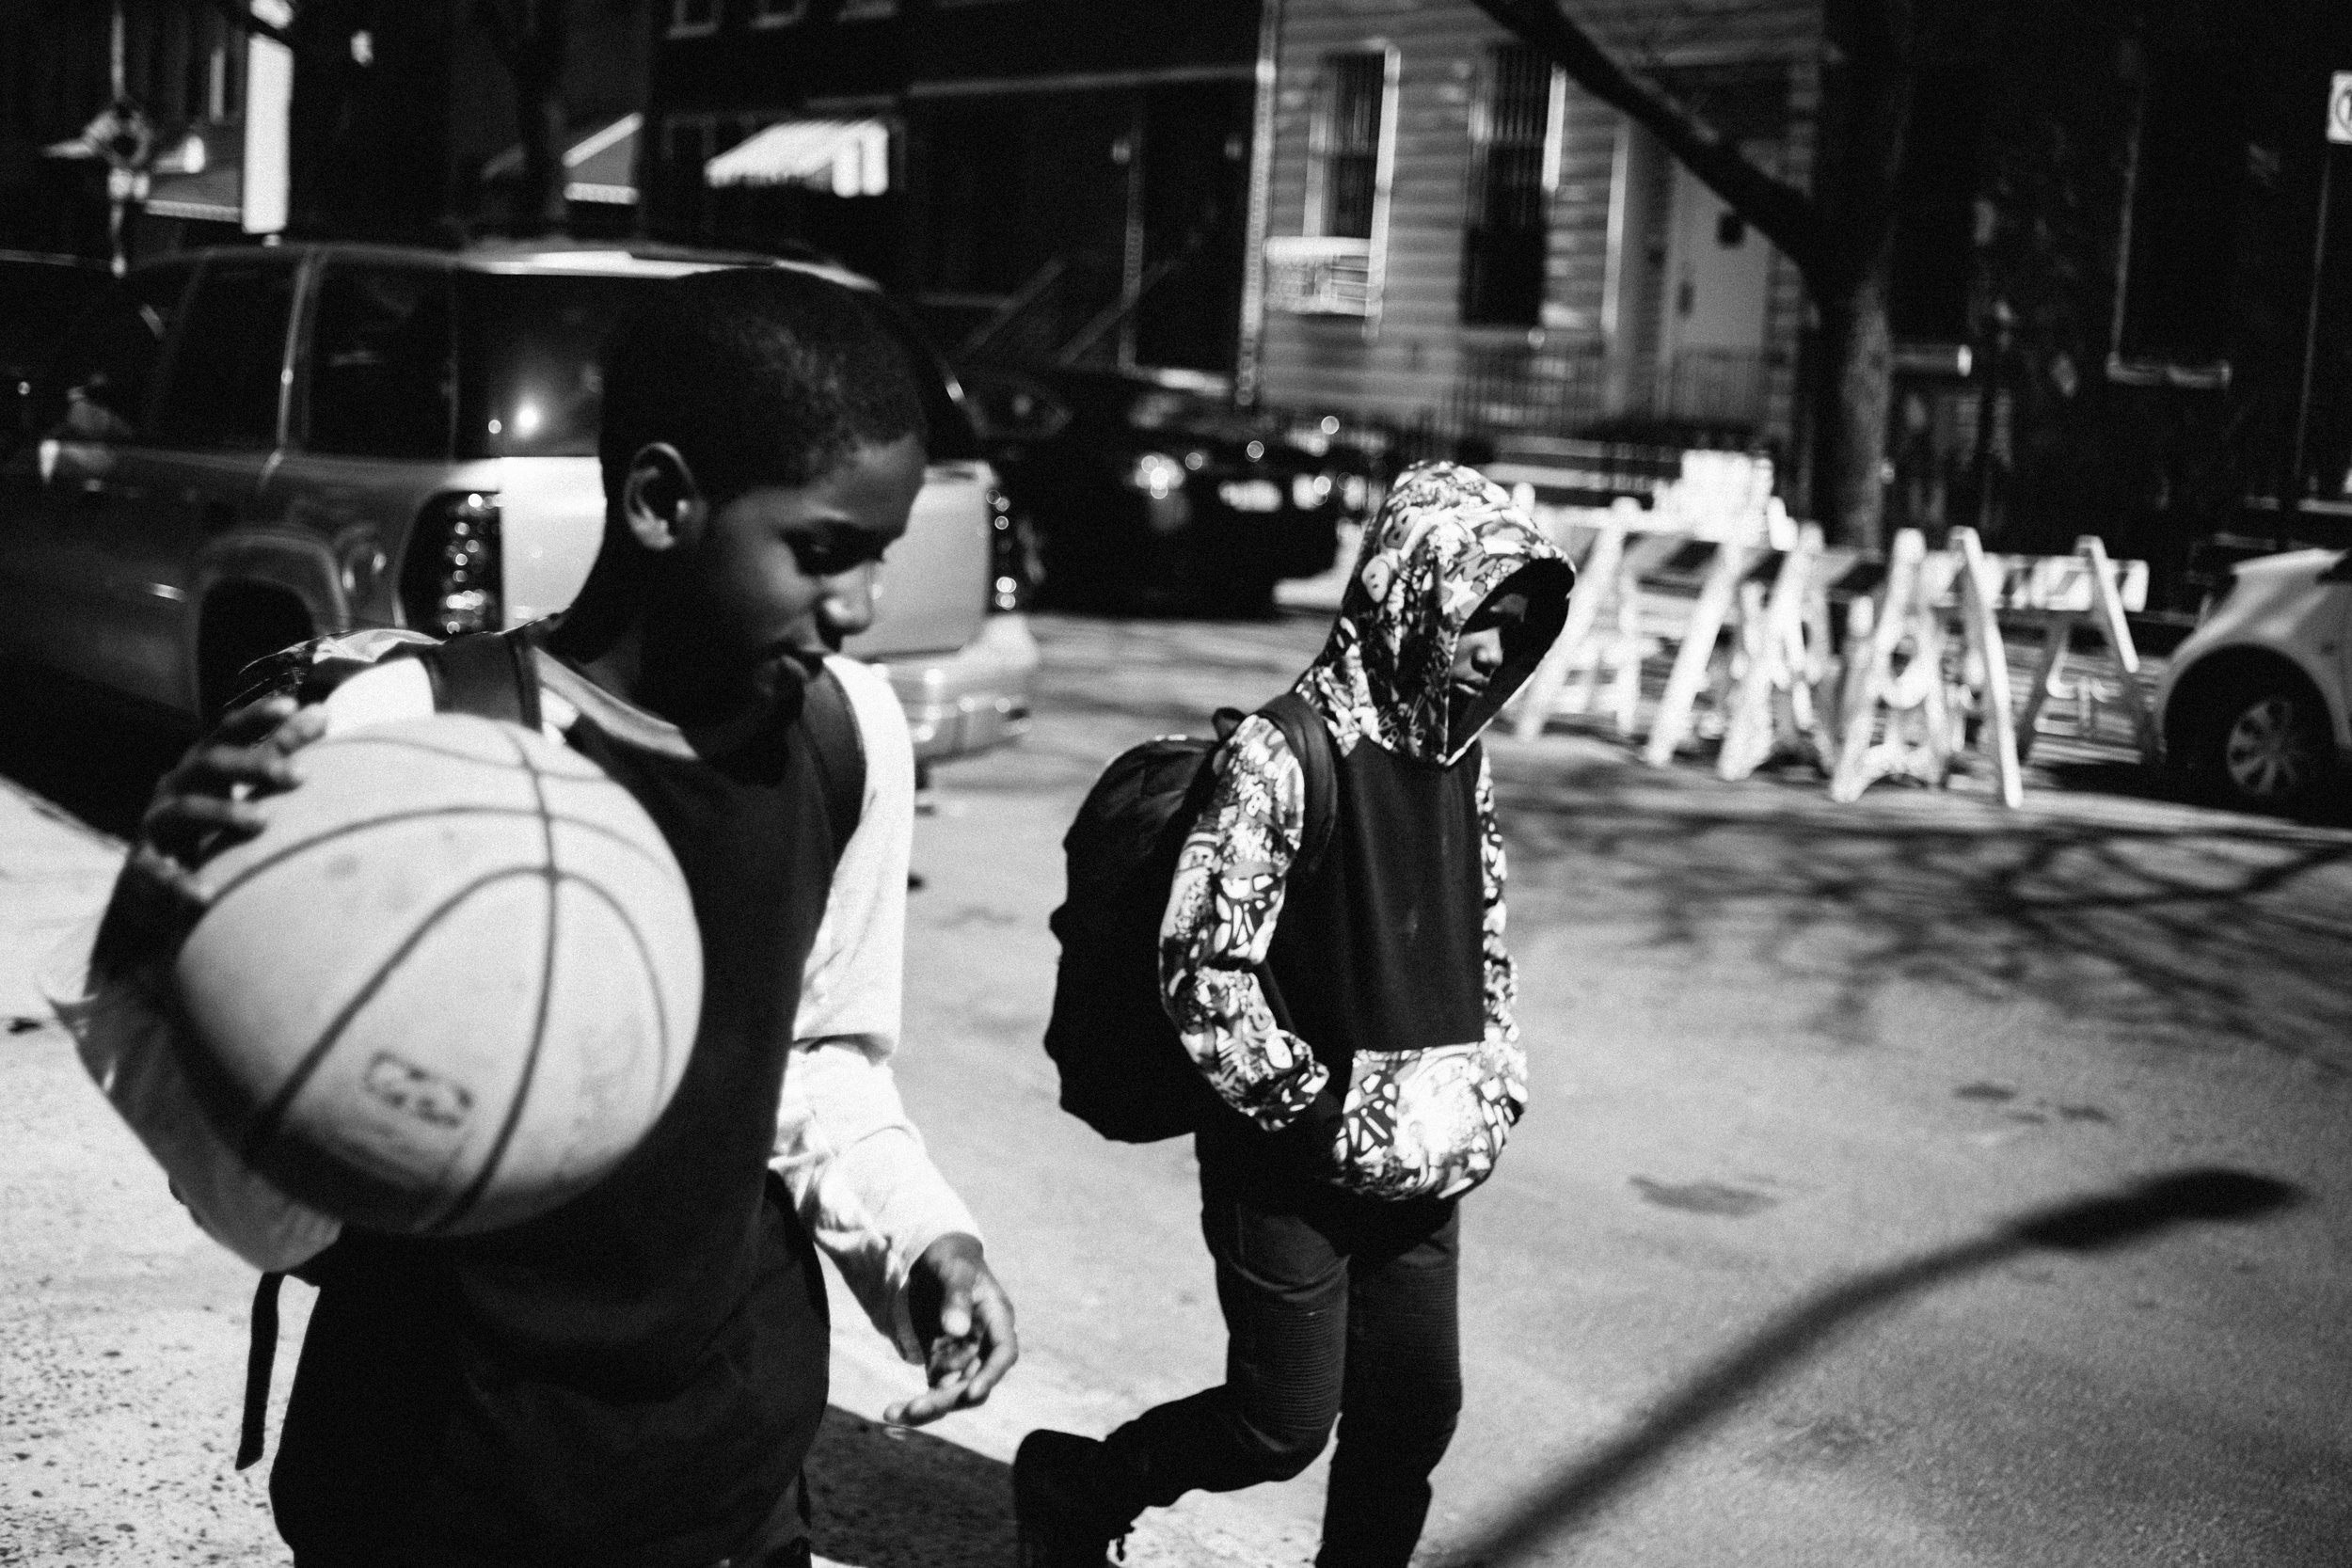 Two young men walk home from school in Bushwick.